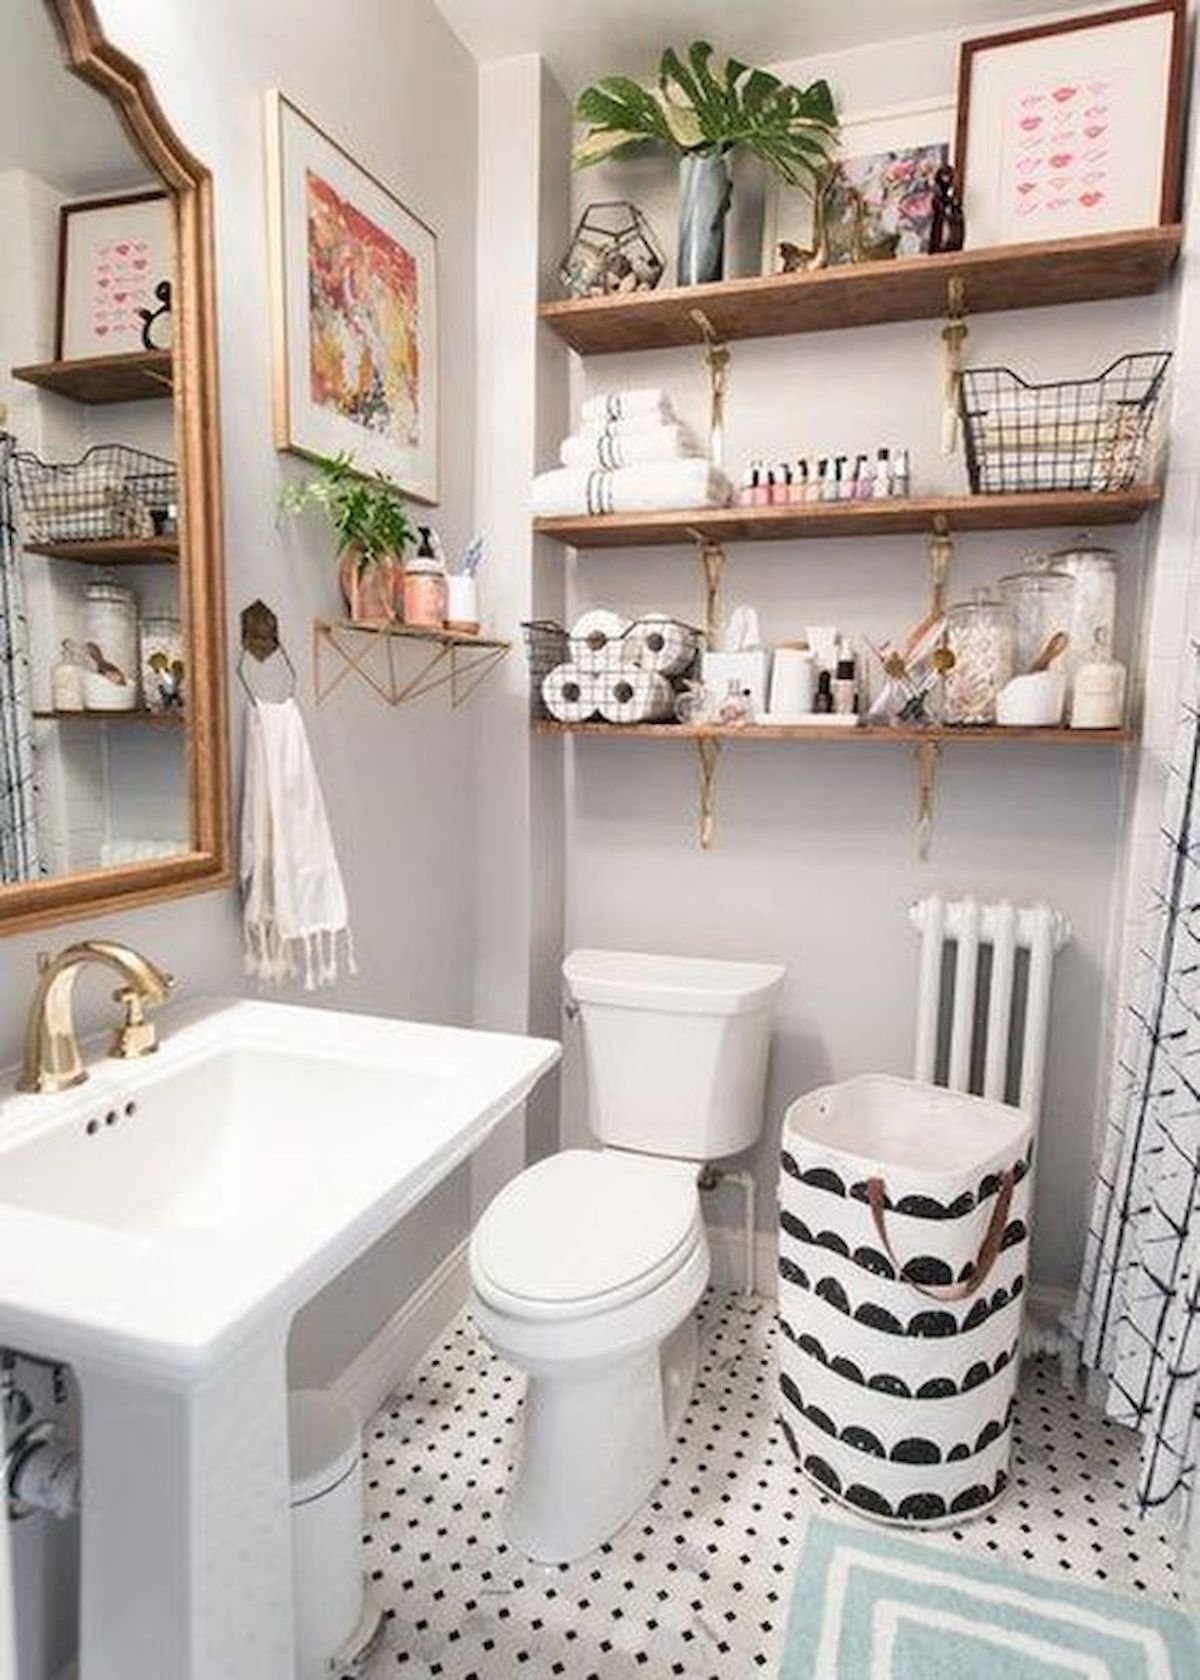 50 Best DIY Storage Design Ideas to Maximize Your Small Bathroom Space (45)